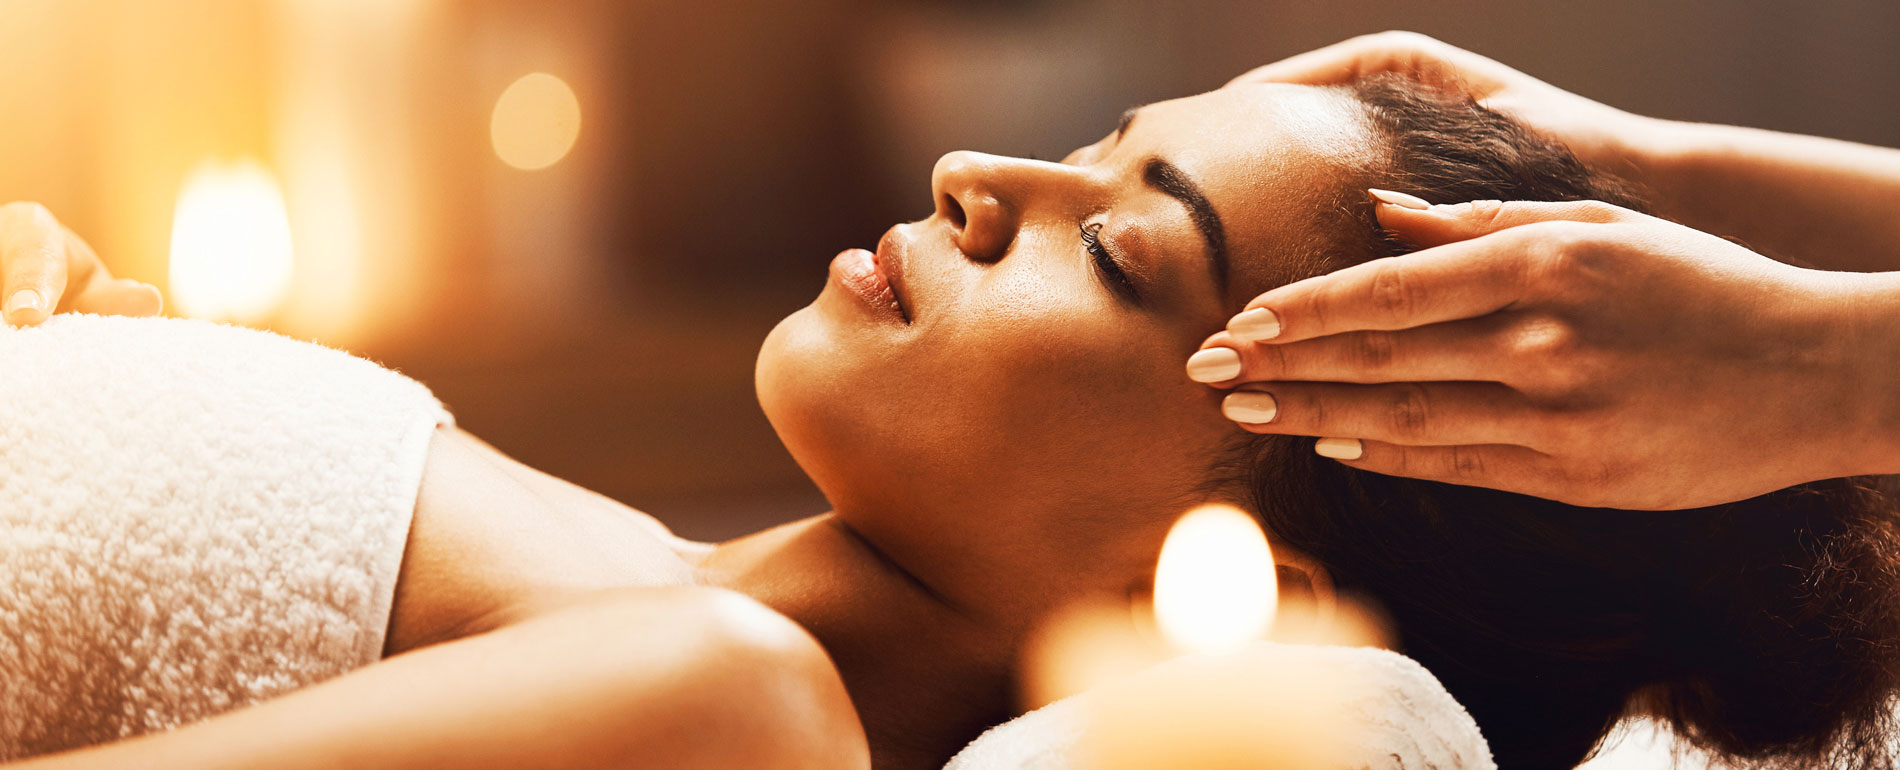 casino spa facial and massage